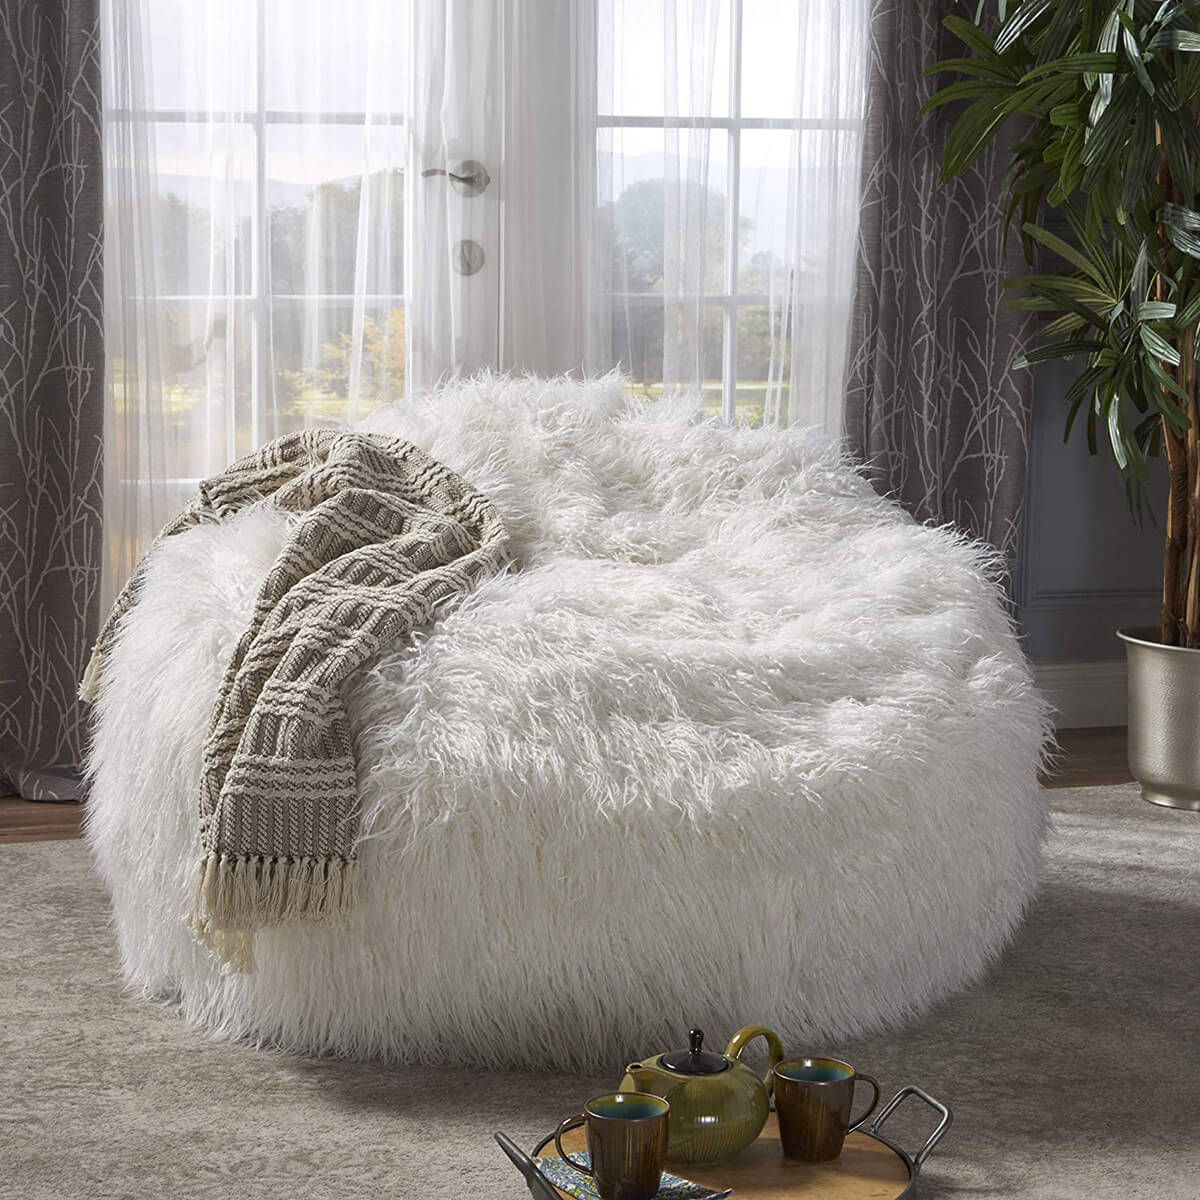 Lycus White Faux Fur Bean Bag Chair